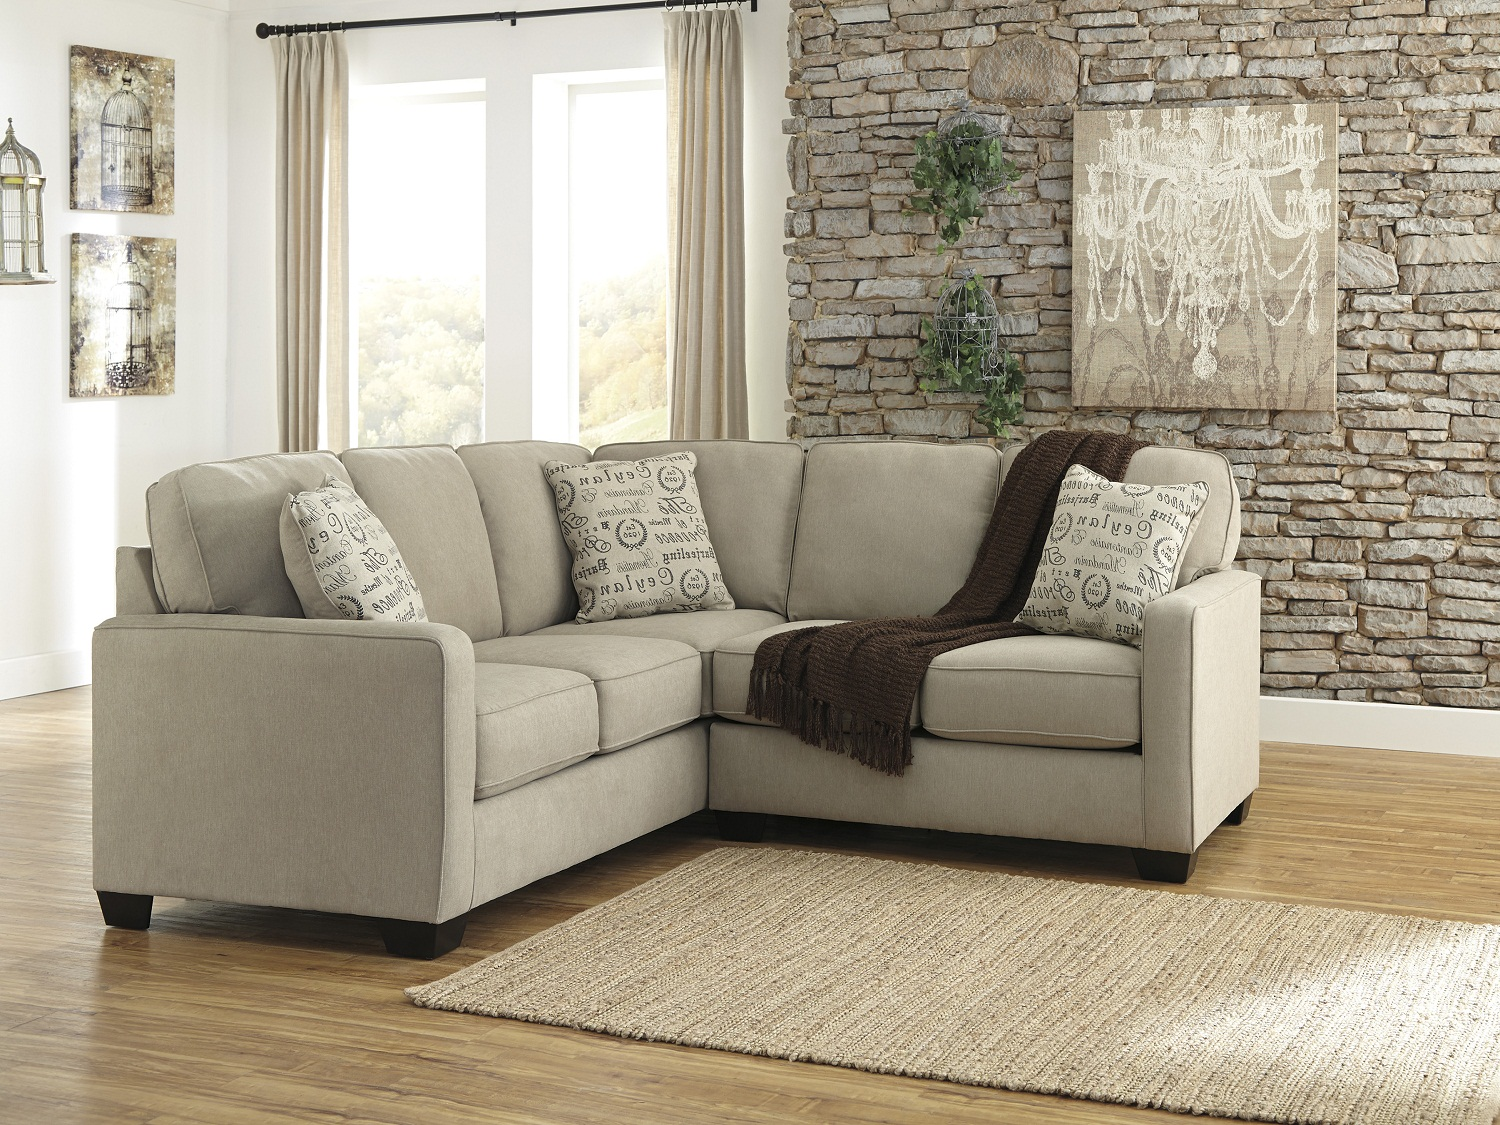 Alenya Sectional (LAF Love Seat/RAF Sofa), 16600, Sectionals by Midha Furniture to Brampton, Mississauga, Etobicoke, Toronto, Scraborough, Caledon, Oakville, Markham, Ajax, Pickering, Oshawa, Richmondhill, Kitchener, Hamilton and GTA area